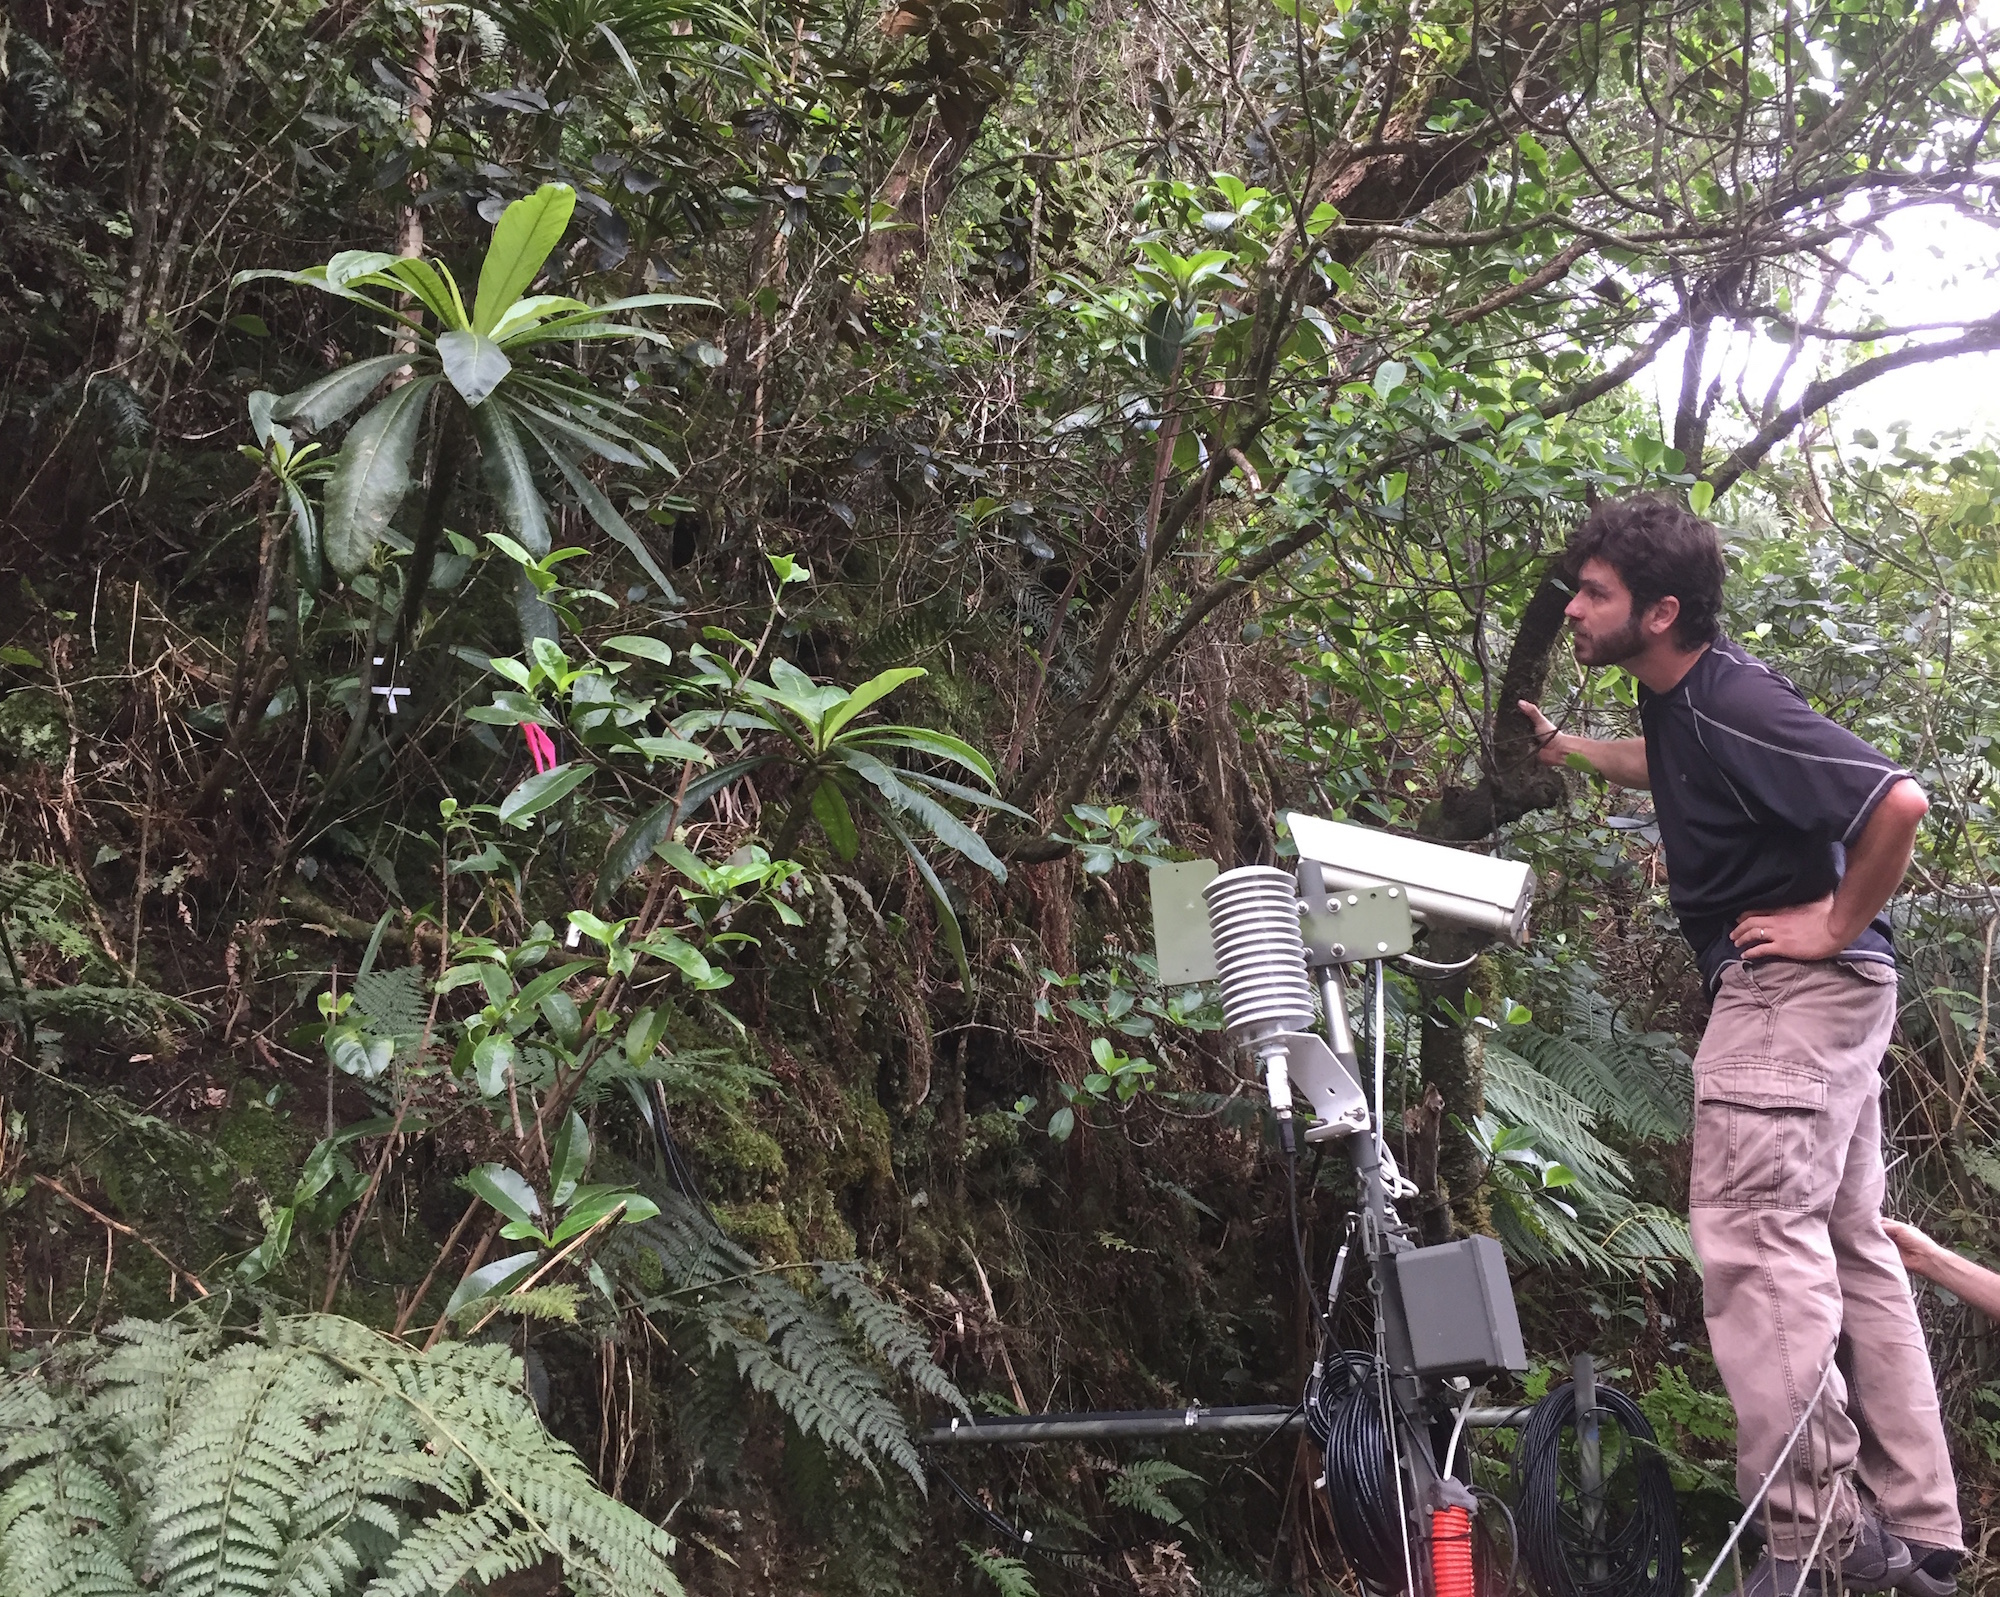 Lucas Fortini with Plant Cam. Credit: USGS.